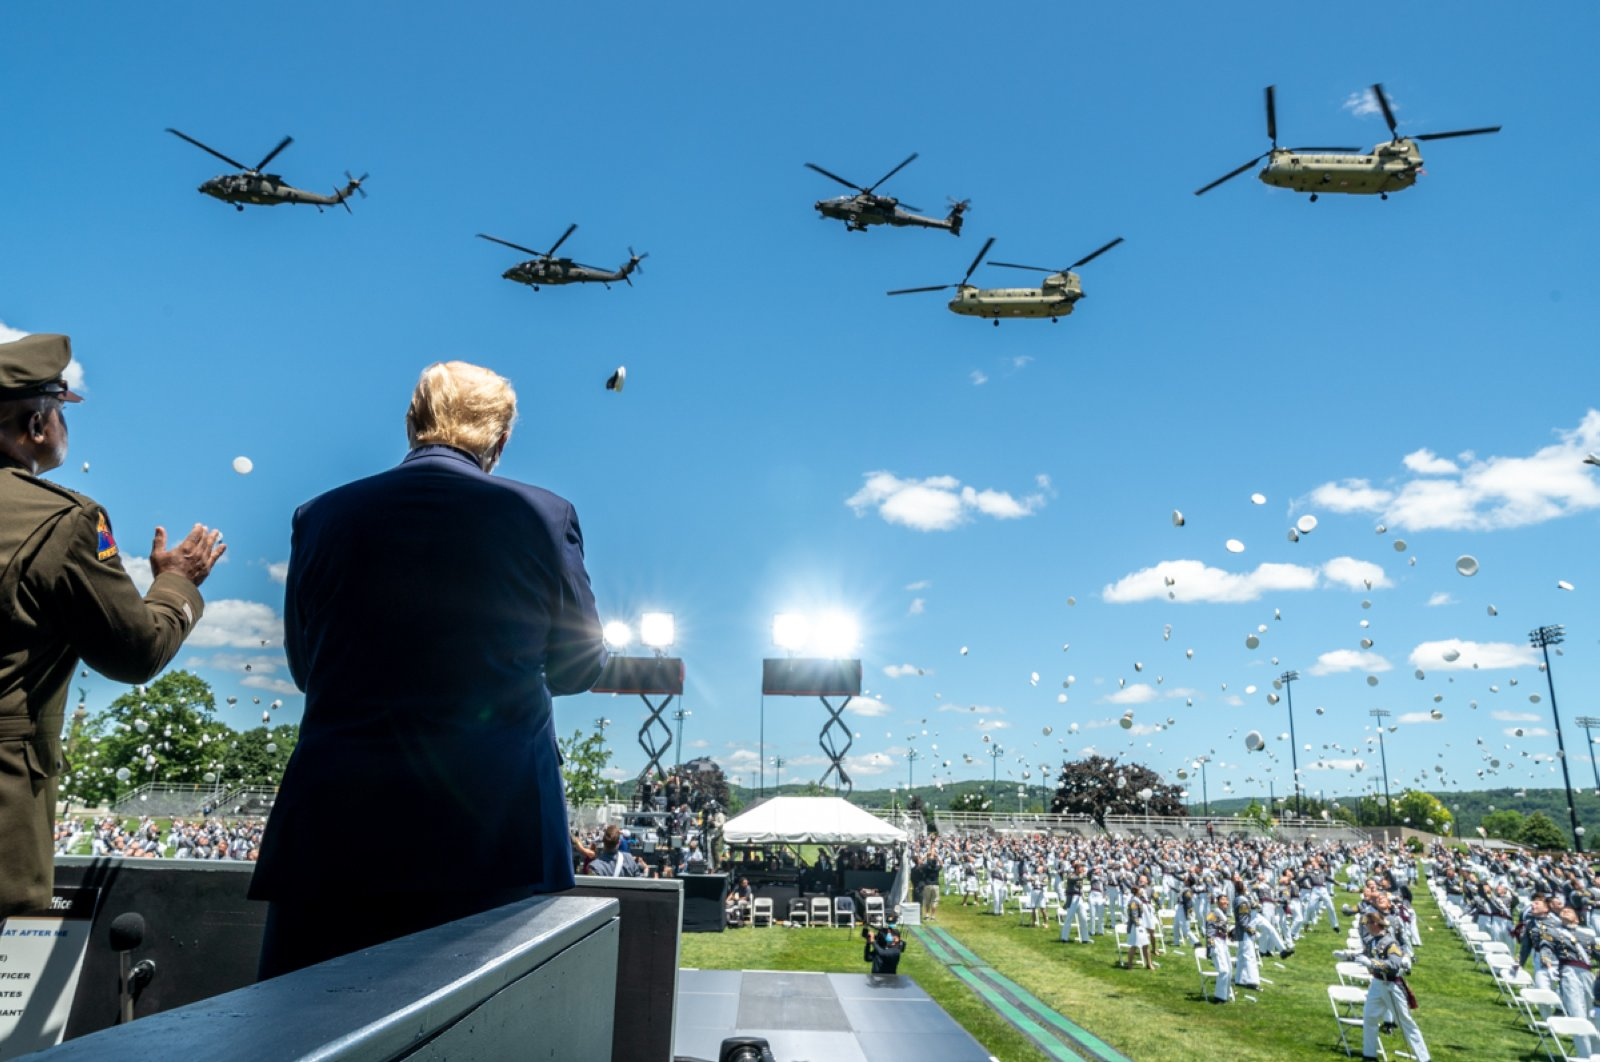 U.S. President Donald Trump attends a graduation ceremony for the U.S. Military Academy at West Point, New York, June 13, 2020. (Reuters Photo)